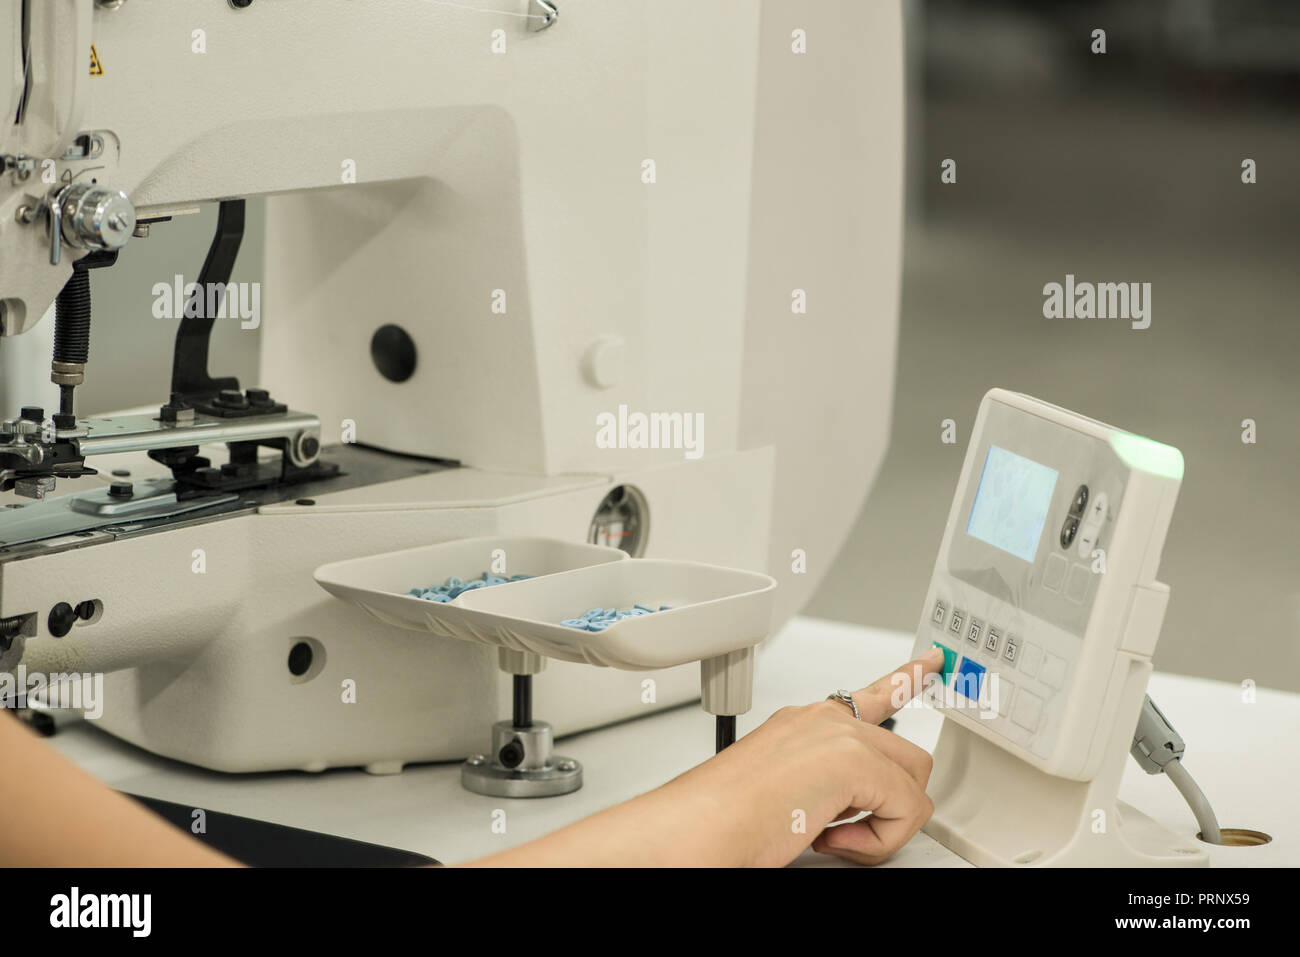 seamstress at work, controls the sewing machine through an electronic panel - Stock Image